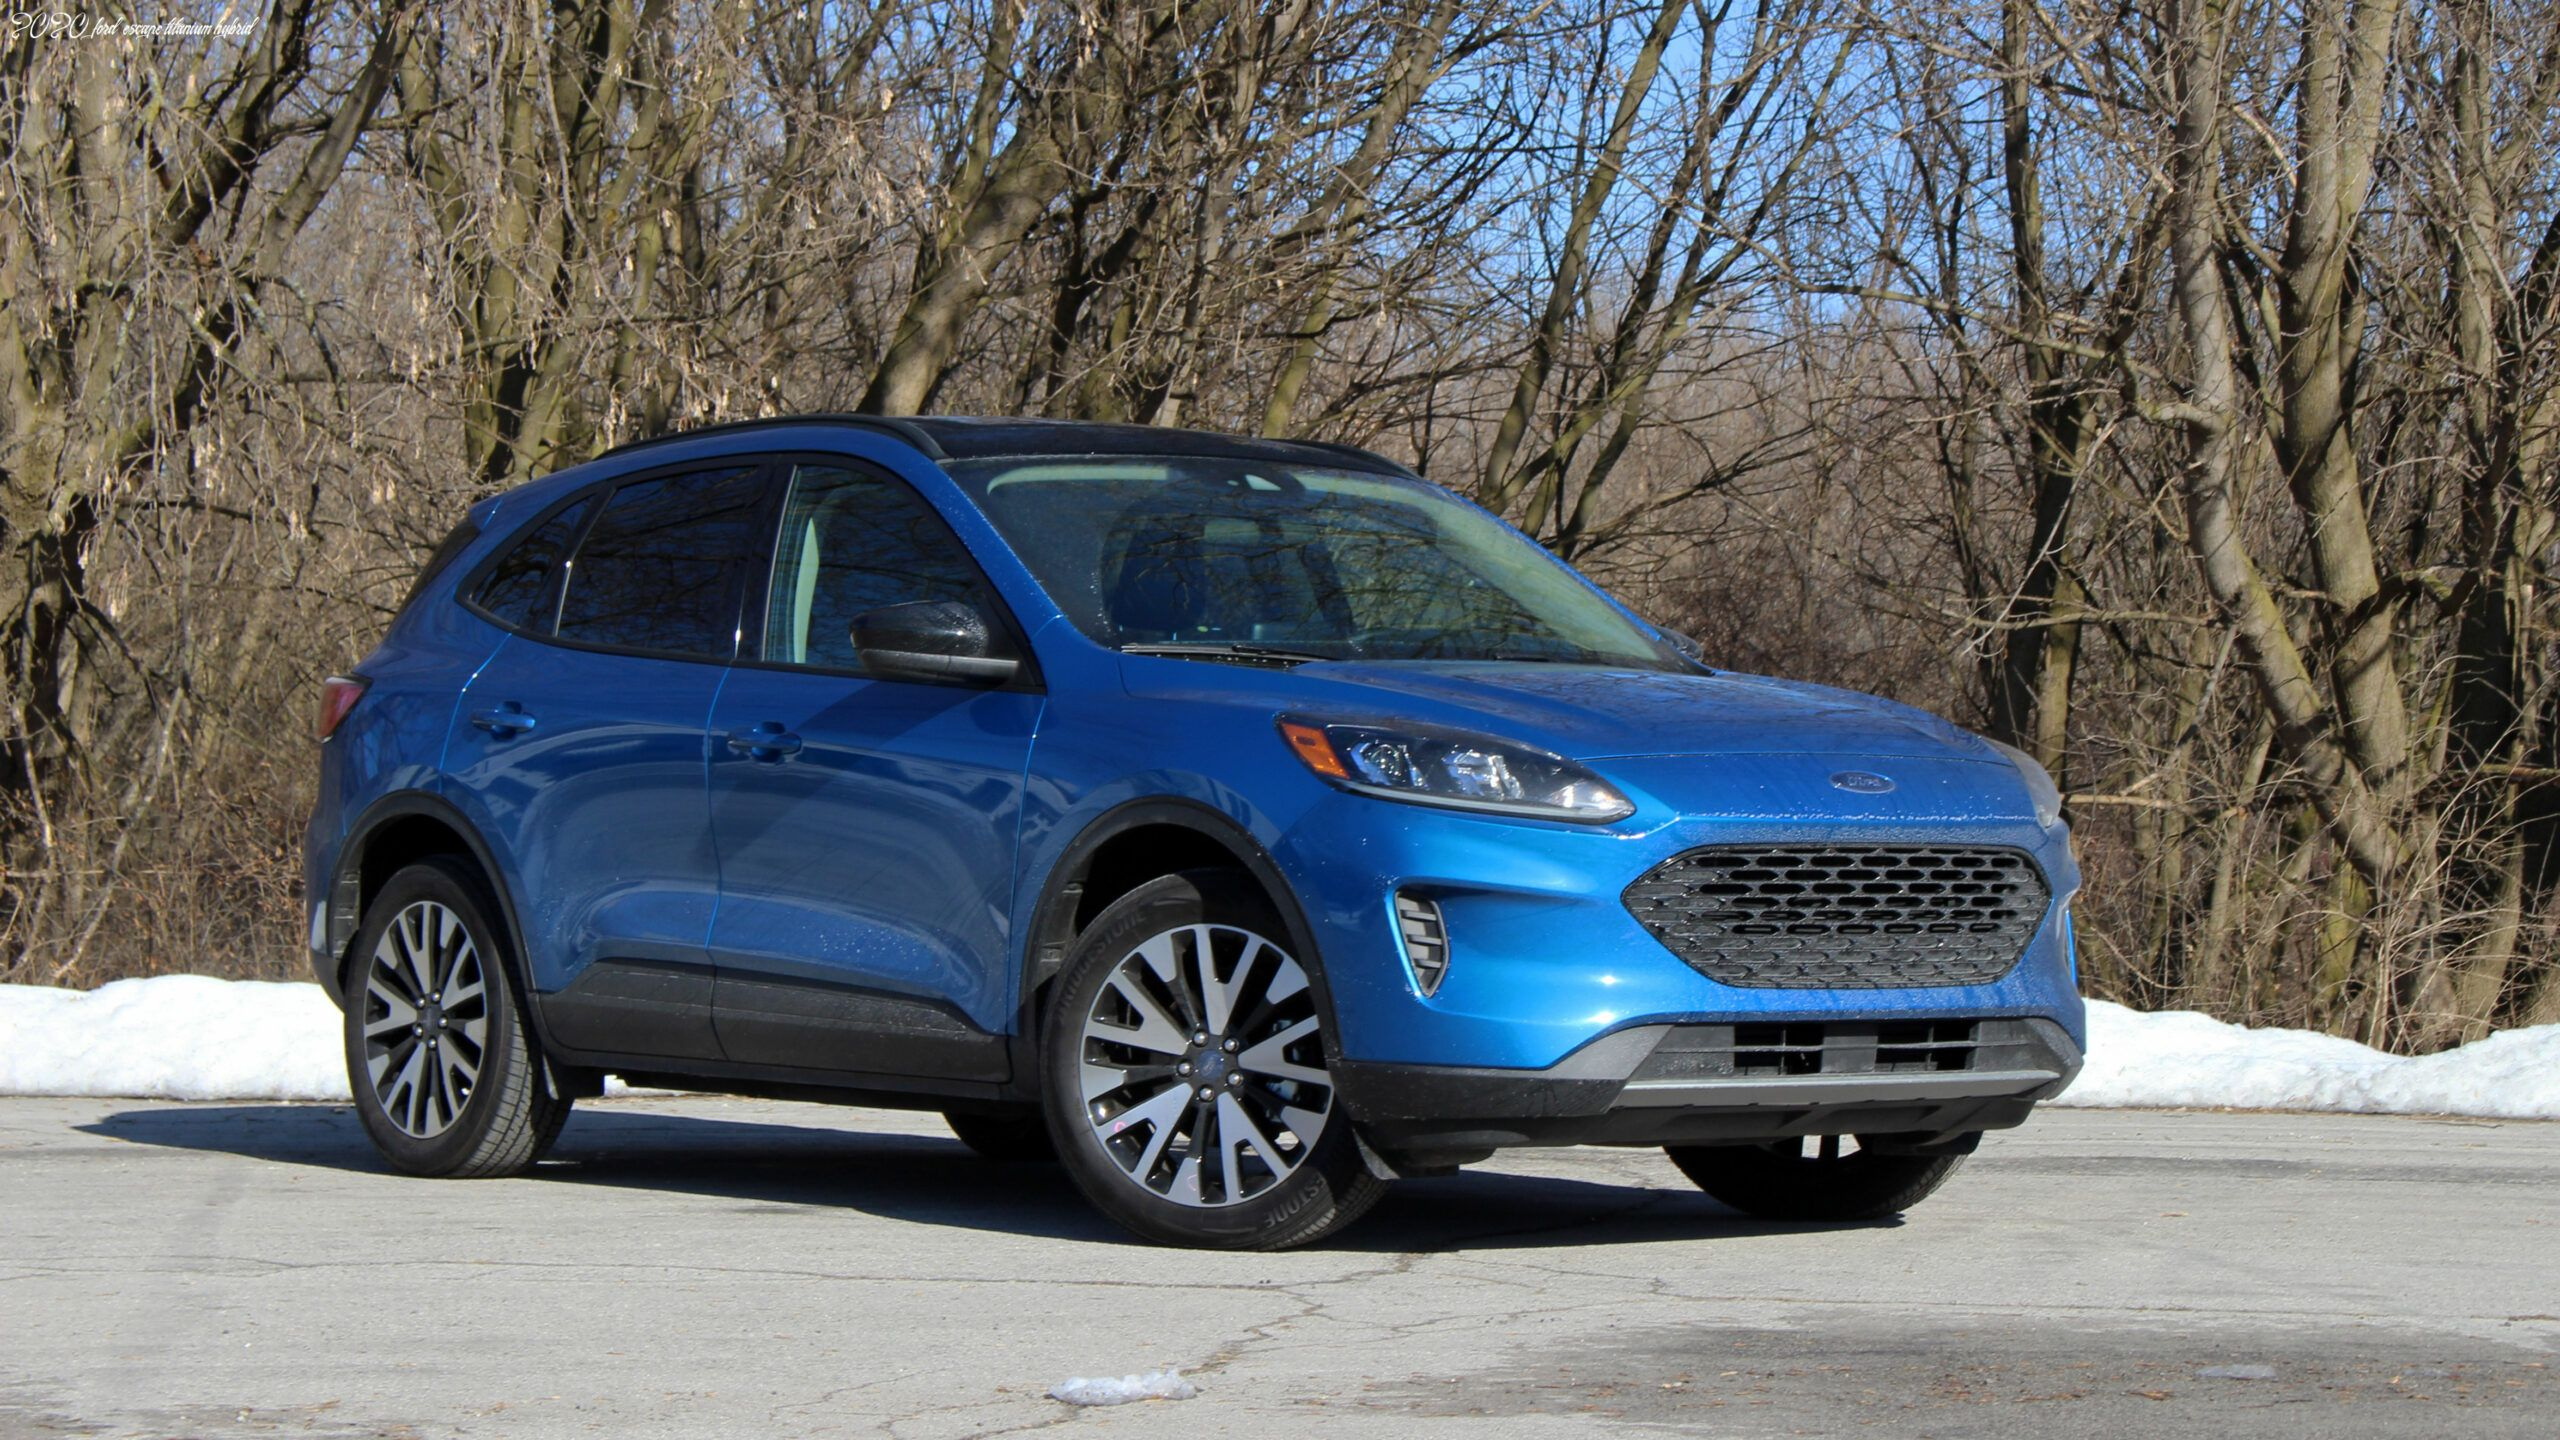 2020 Ford Escape Titanium Hybrid In 2020 Ford Escape Ford Toyota Rav4 Hybrid